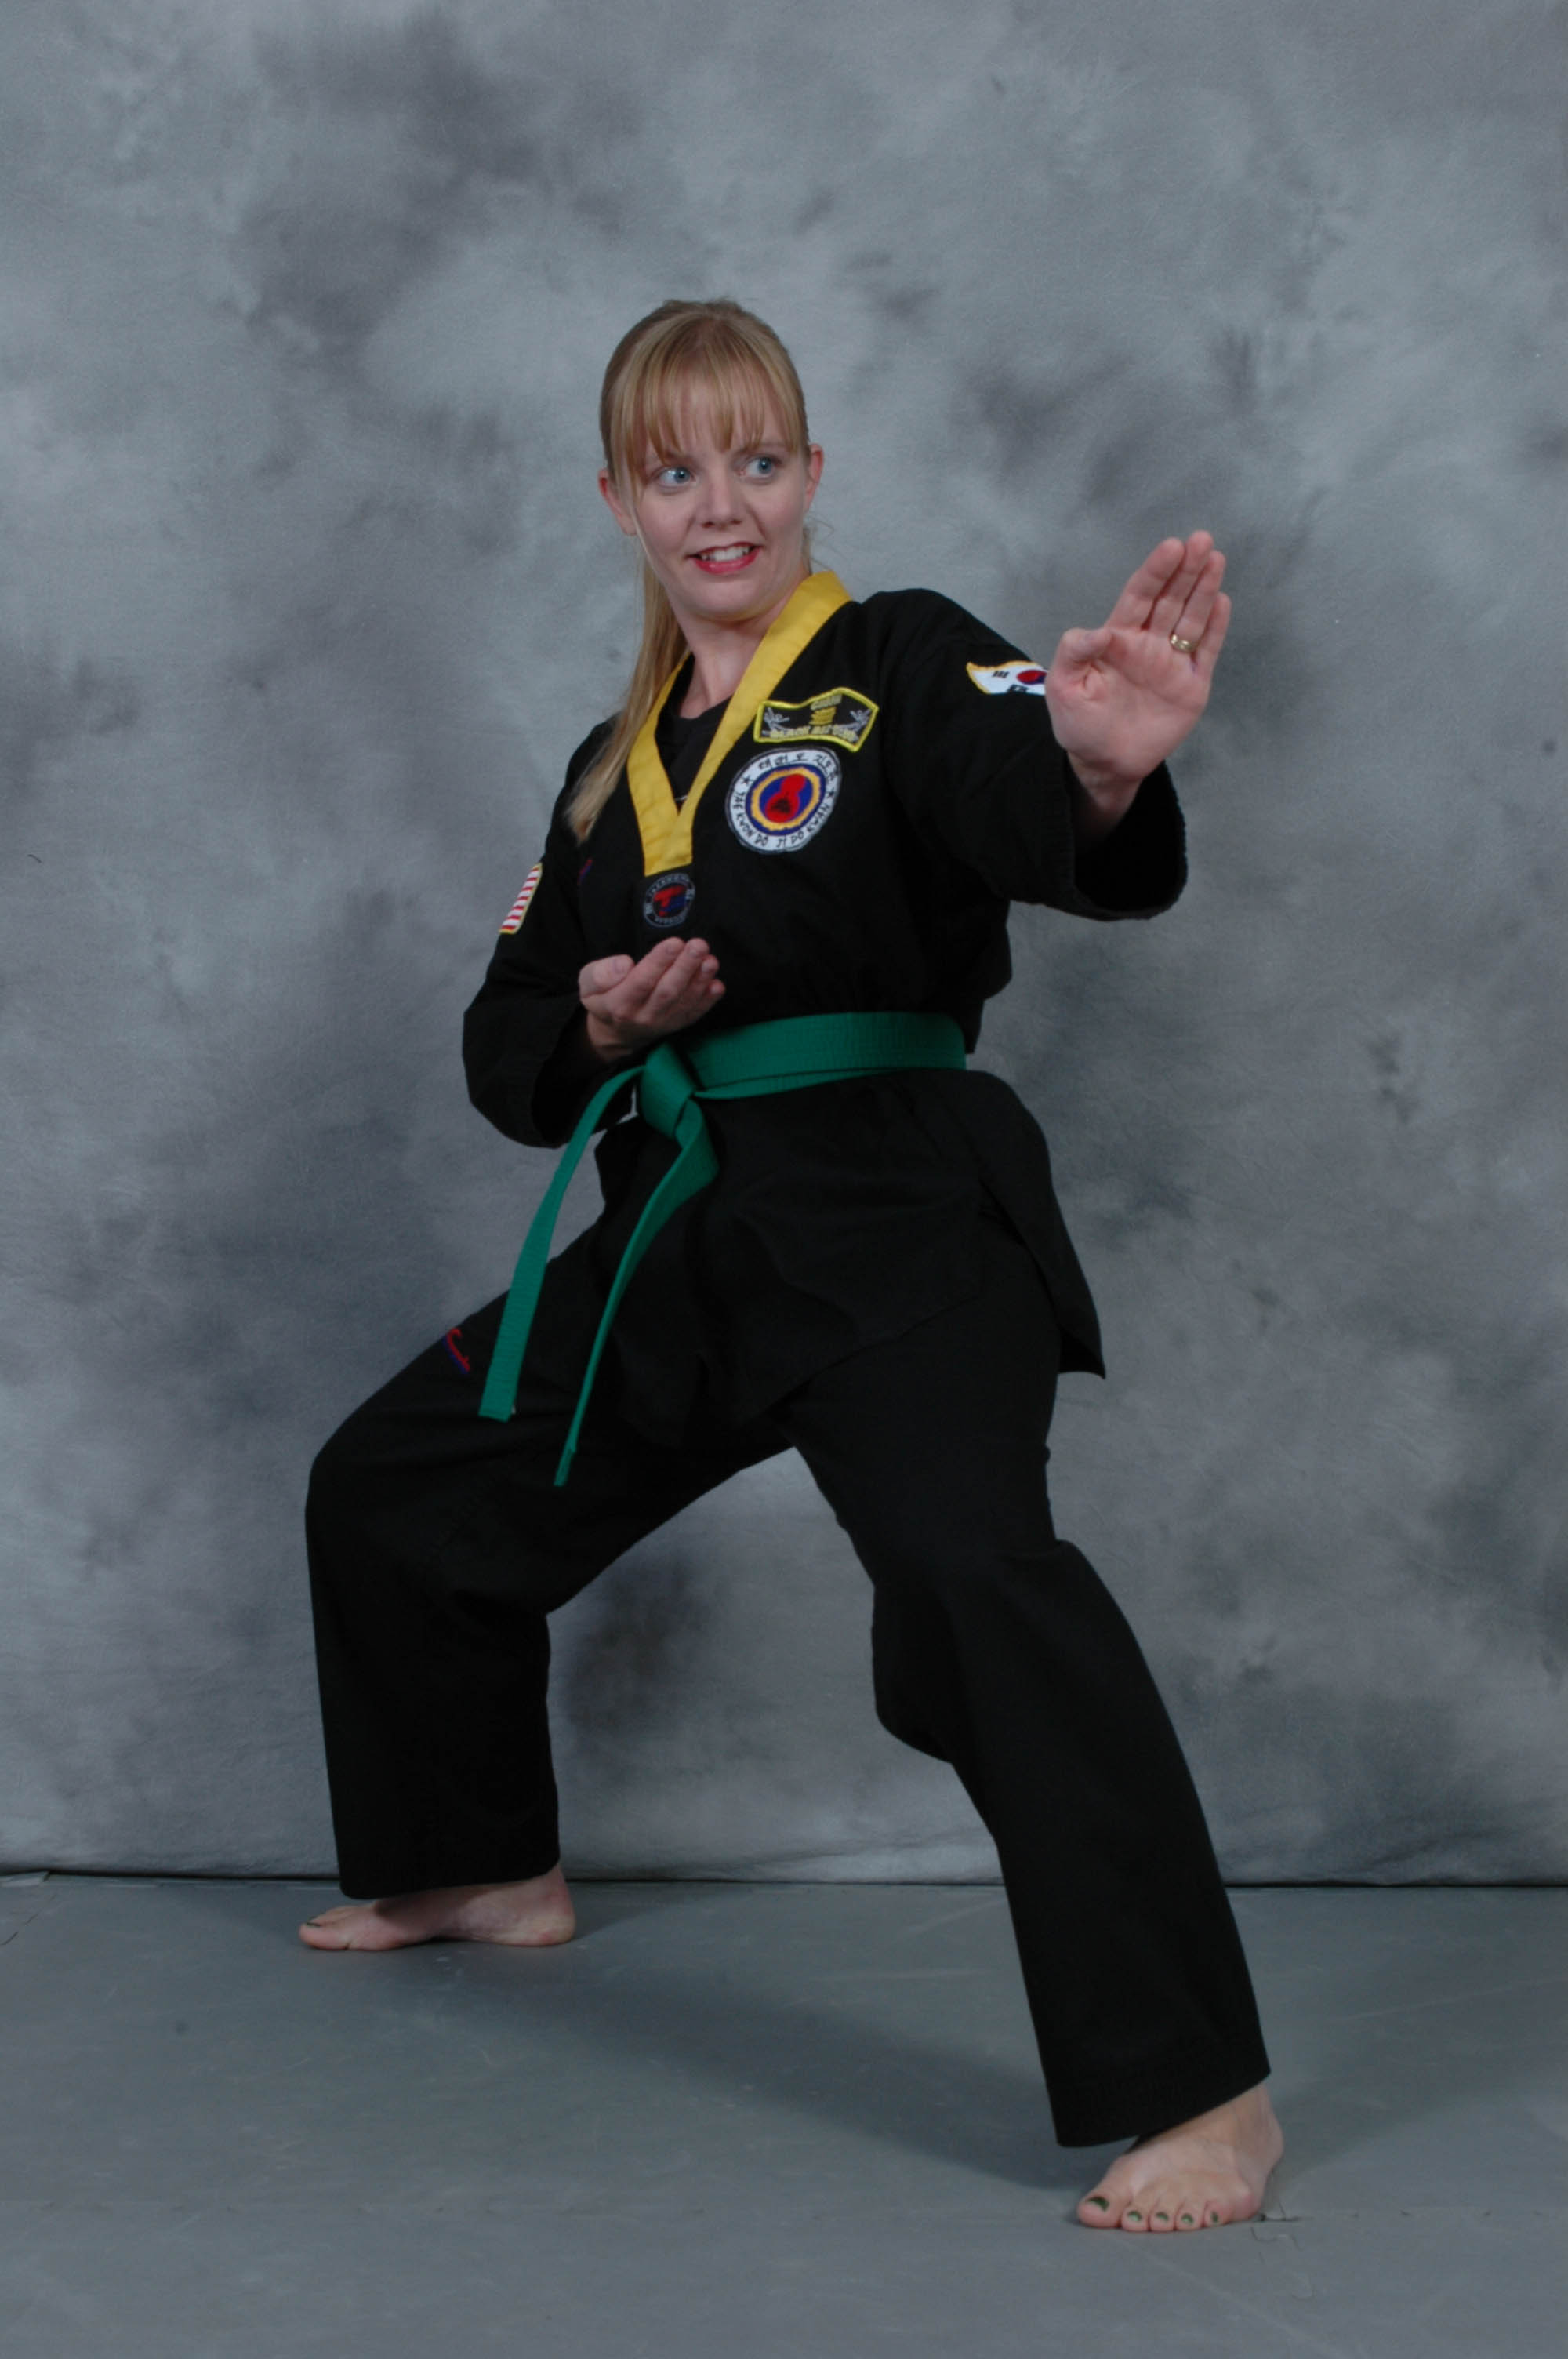 young lady preforming martial arts stance